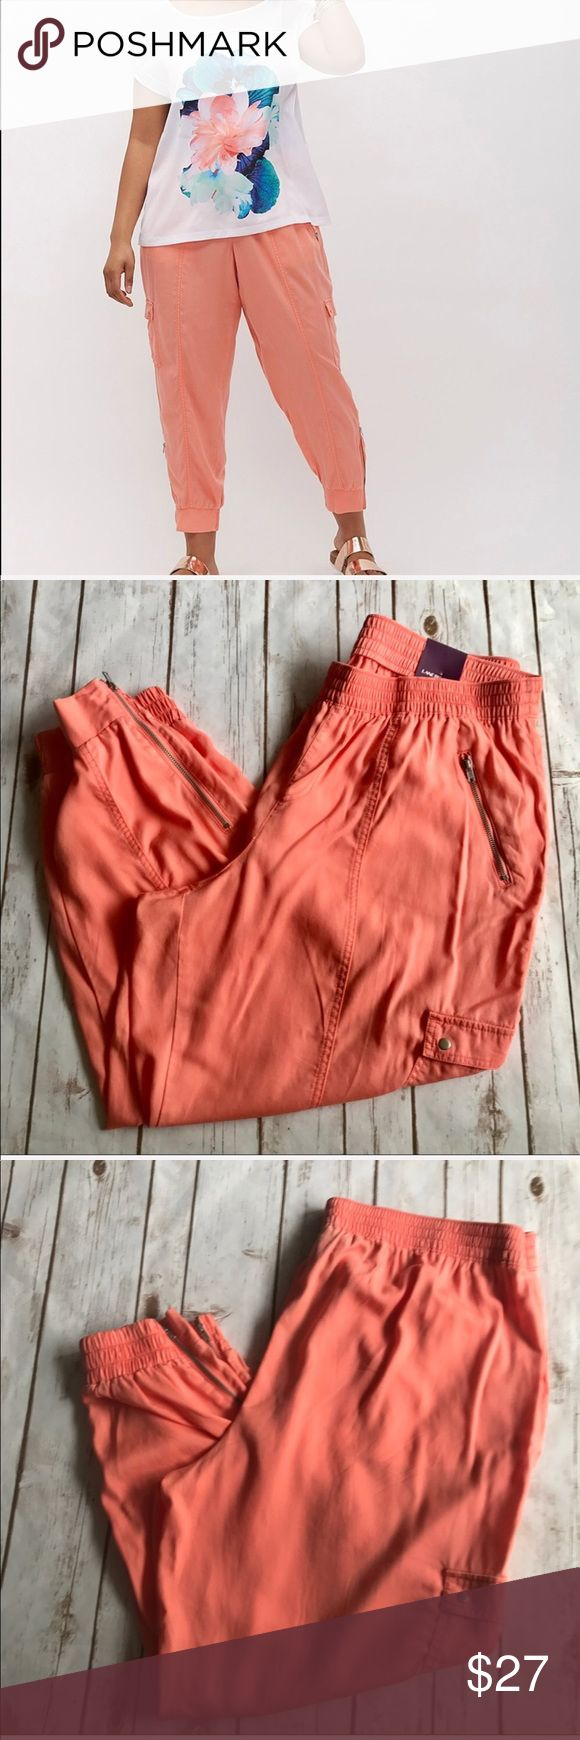 Lane Bryant Flight Pants Soft Coral Capris Lane Bryant Flight Pants Soft Coral Capris. The Flight Pant everything you love about a cargo in a relaxed jogger shape. .   • 100% lyocell. • Elastic waist.  • Elastic cuffs with zipper detail.  • Zip pocket at hip.  • Button cargo pocket • Machine wash cold.  • Approx. measure: inseam 28in, outseam 36in, cuff 6in.  • Size 18/20  💕Offers welcome on single items and on bundles💕 🛍 15% off bundles of 2+ Lane Bryant Pants